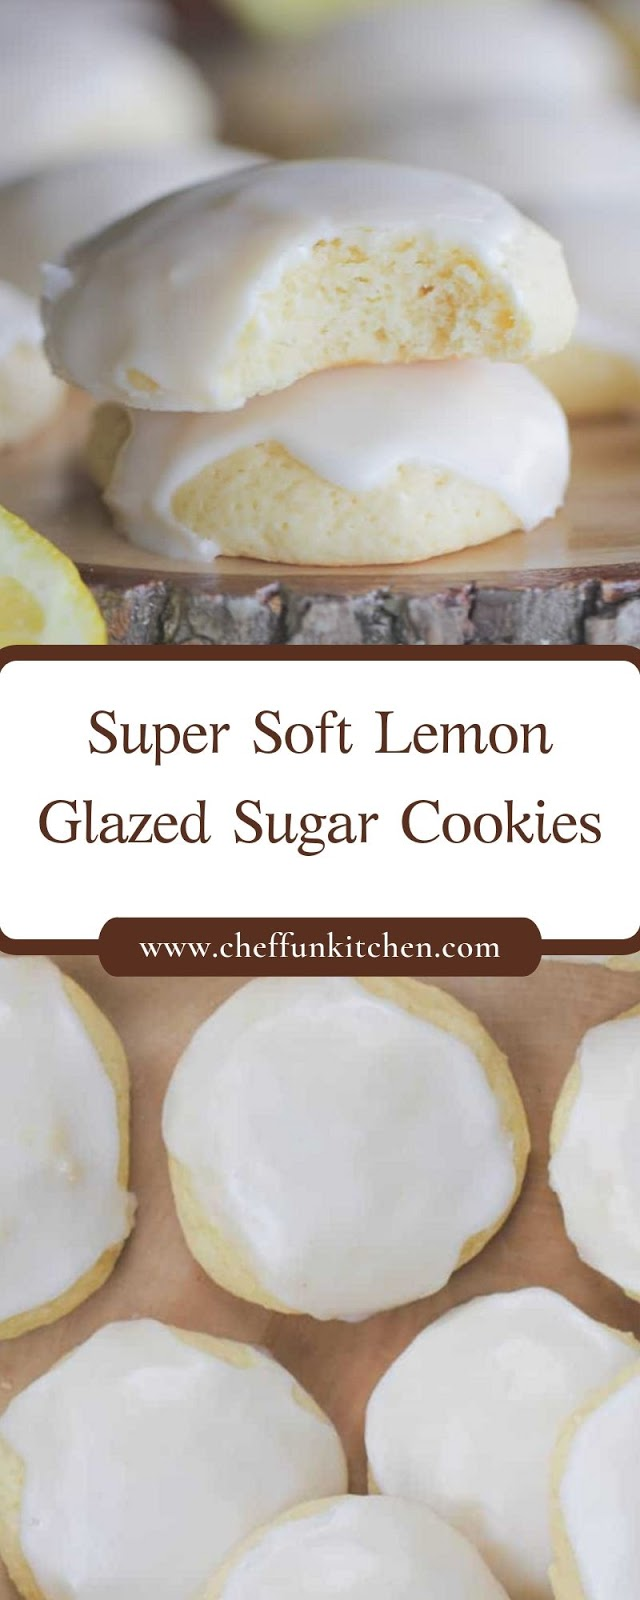 Super Soft Lemon Glazed Sugar Cookies